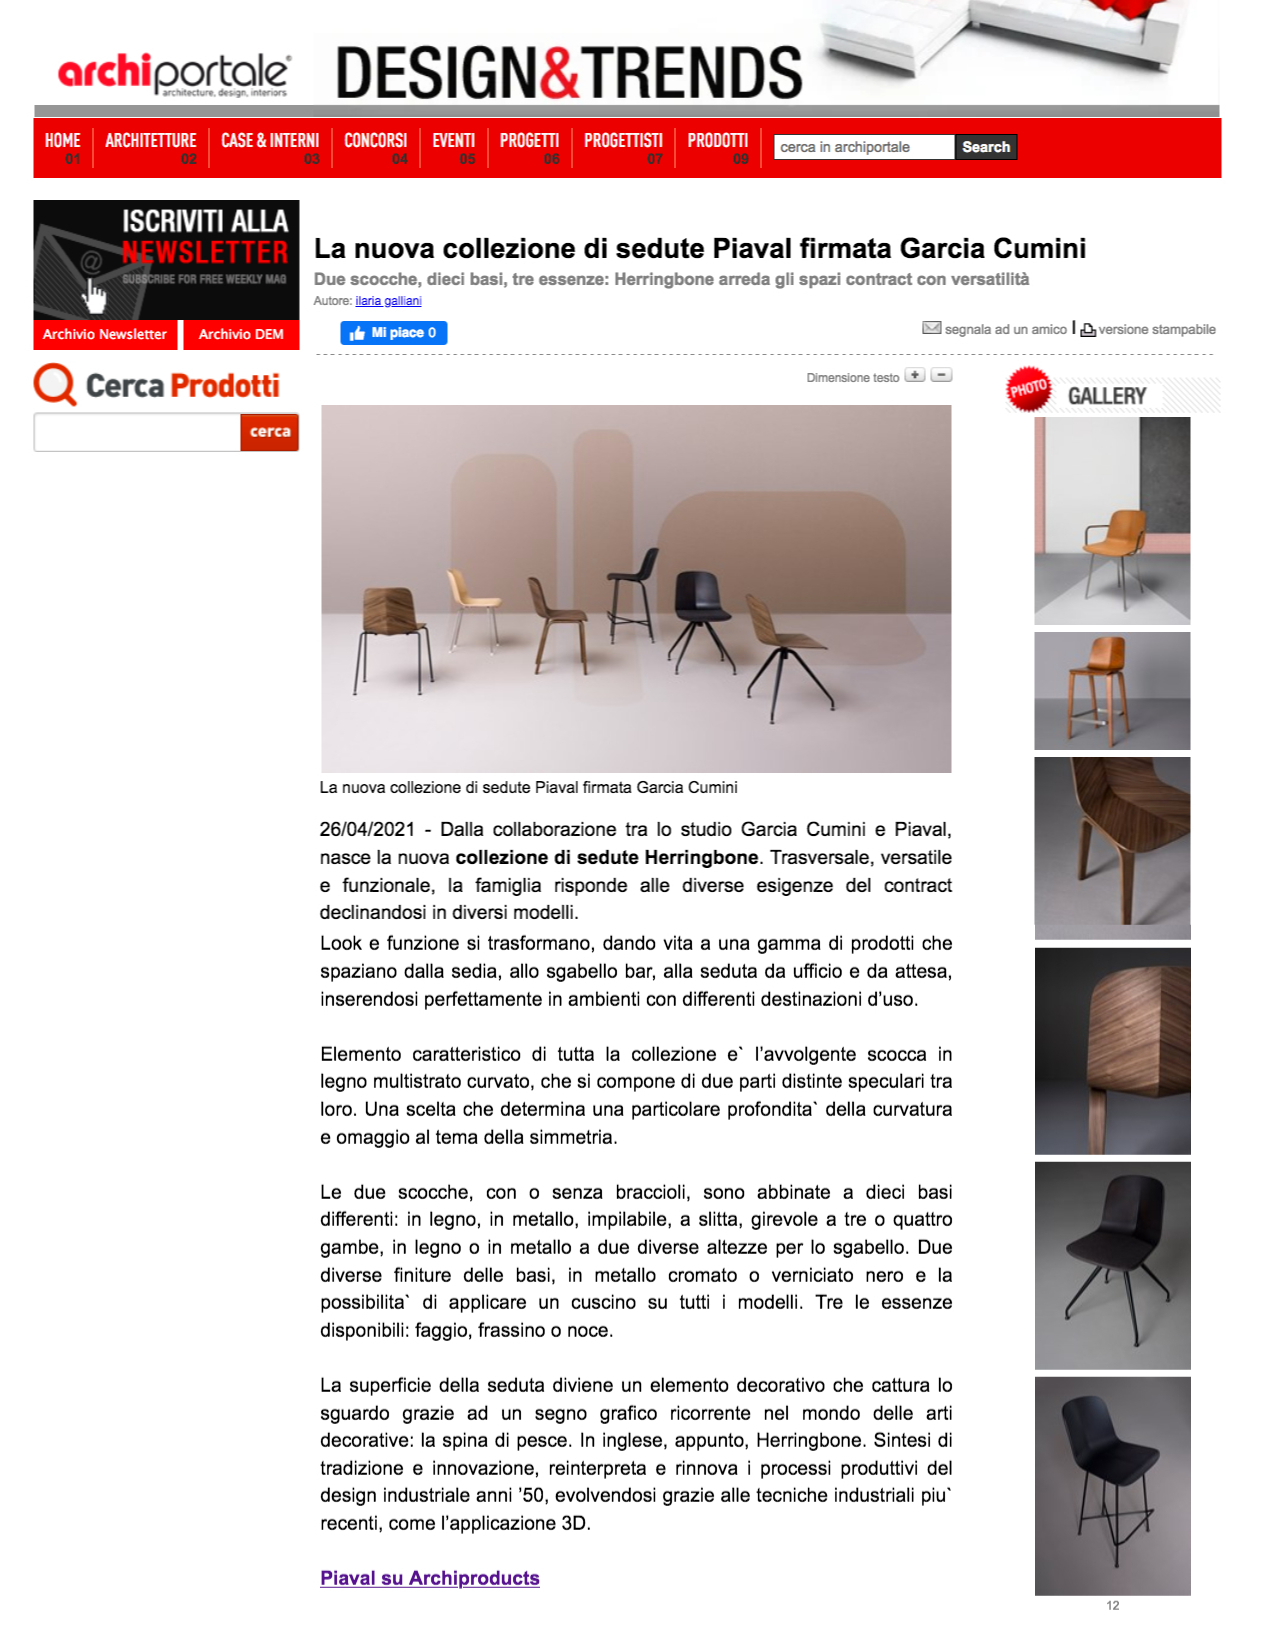 Archiportale article about Herringbone collection